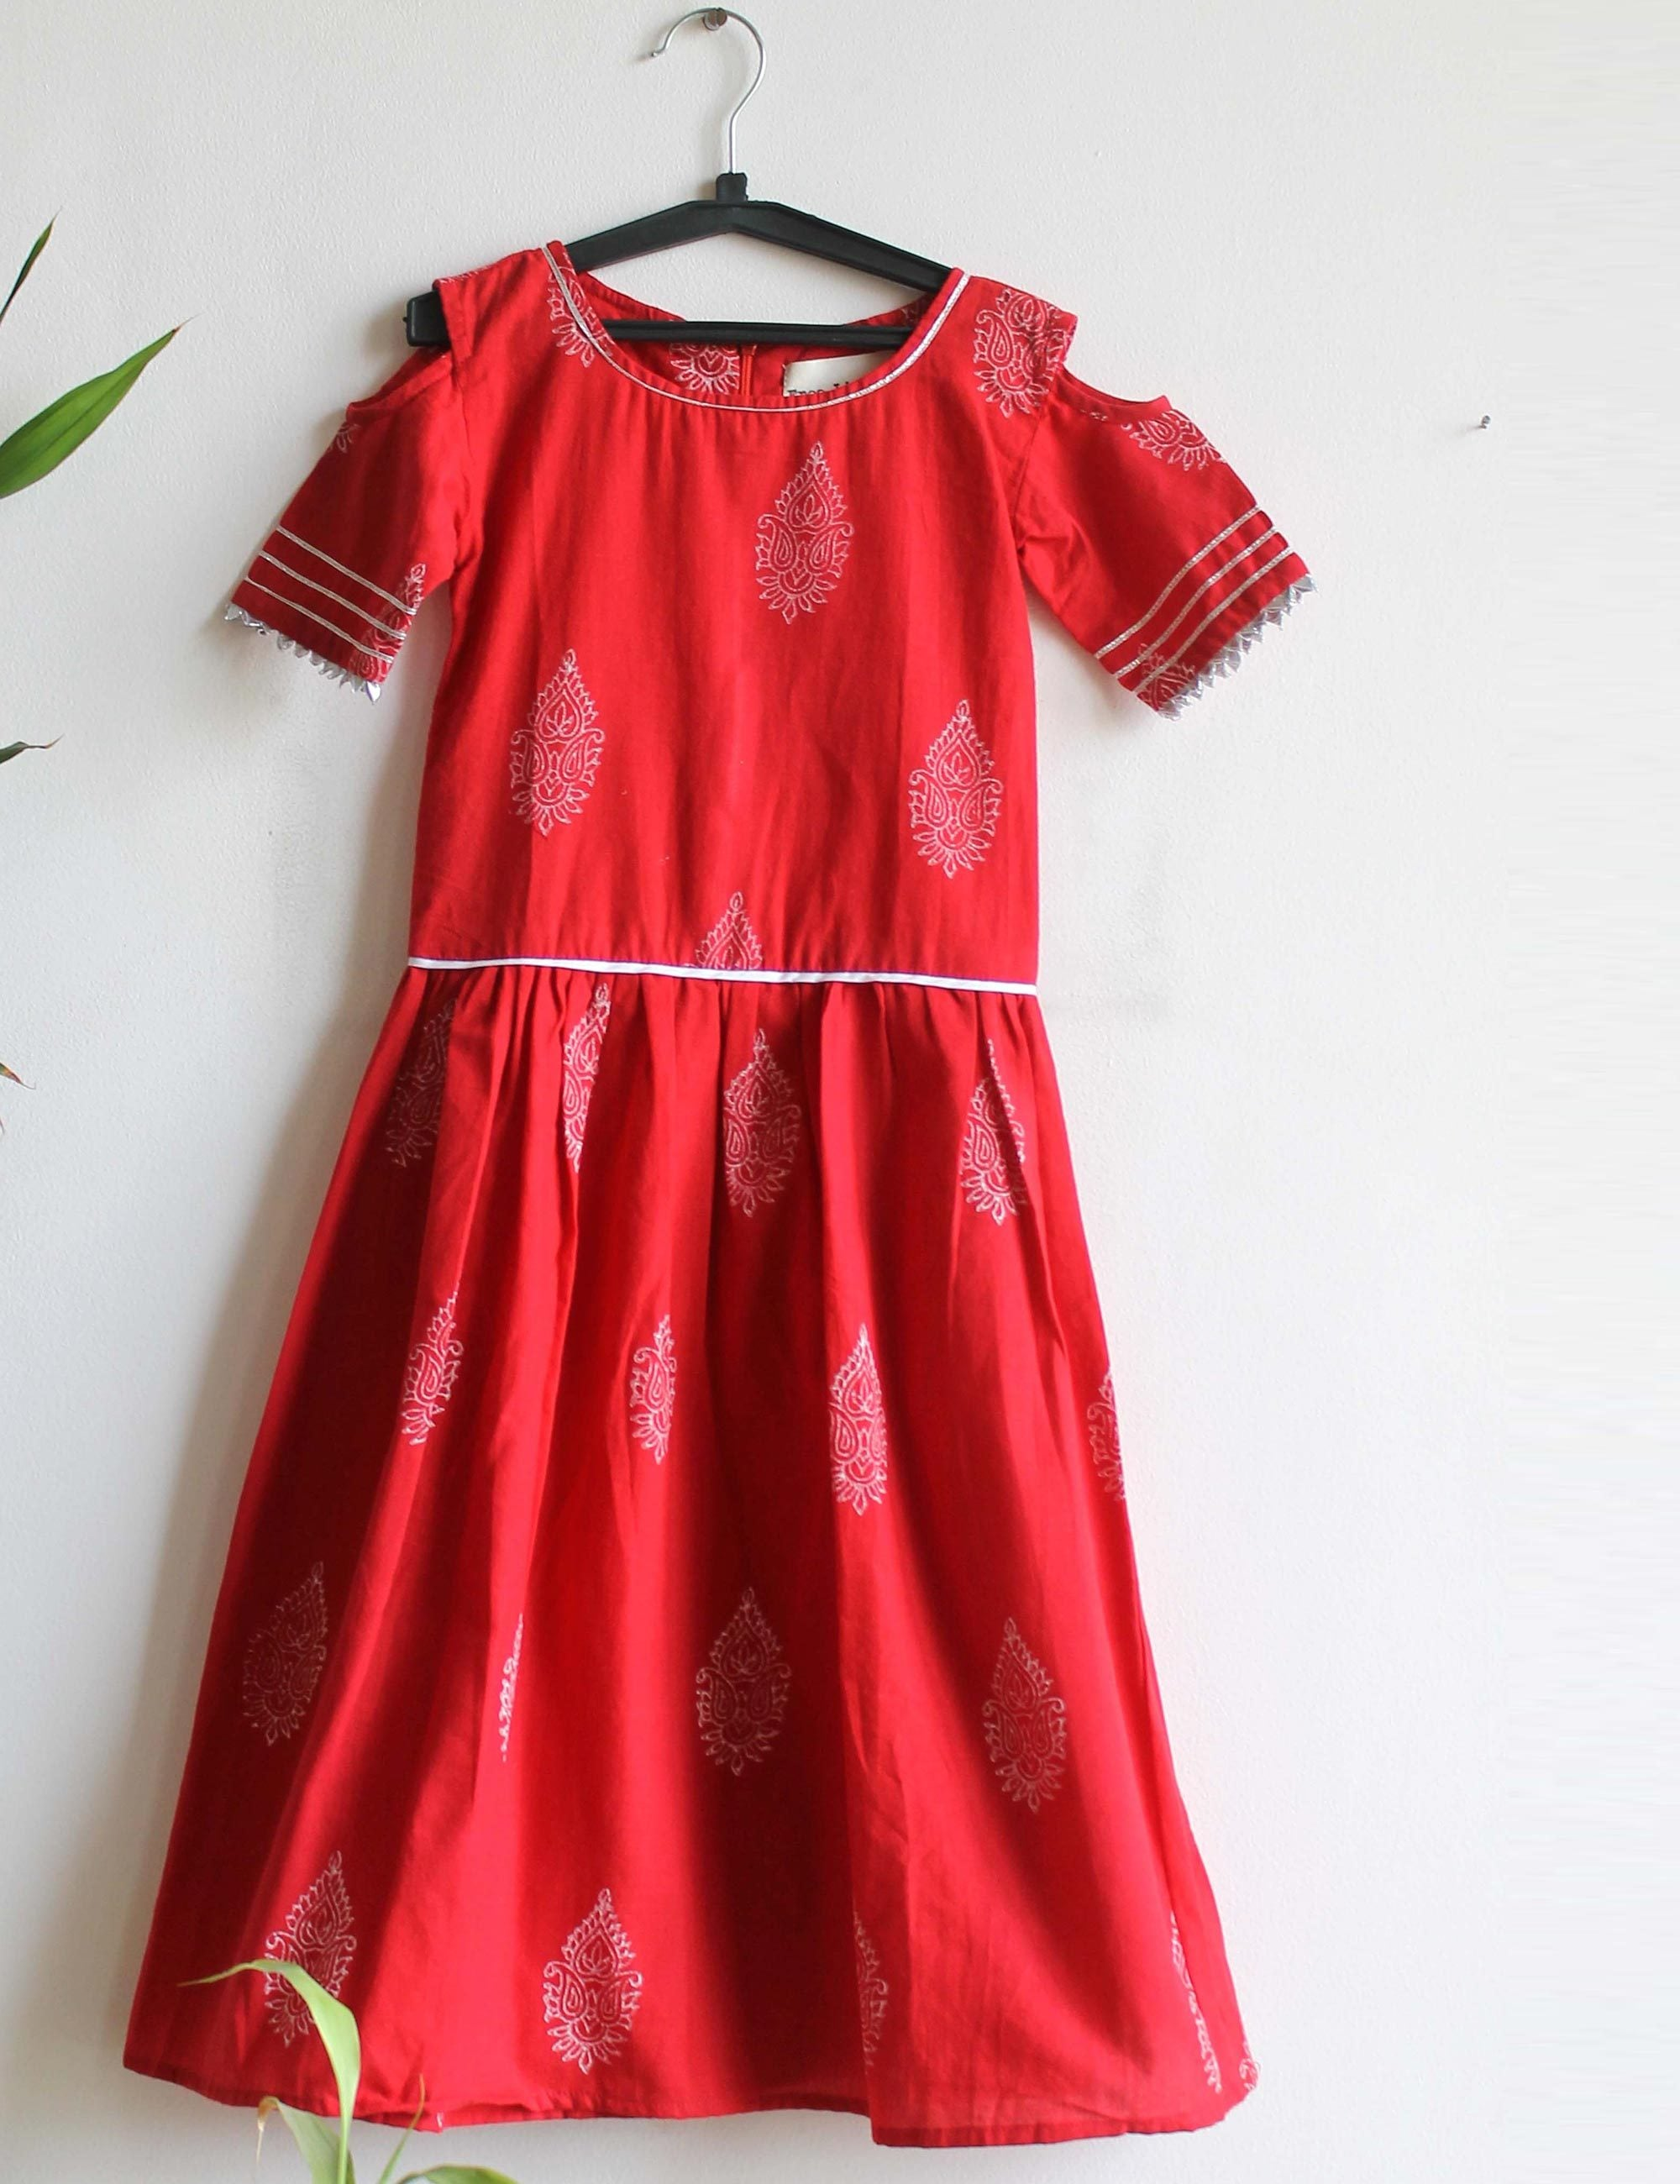 A Cold Shoulder Dress in Red Colour for Girls